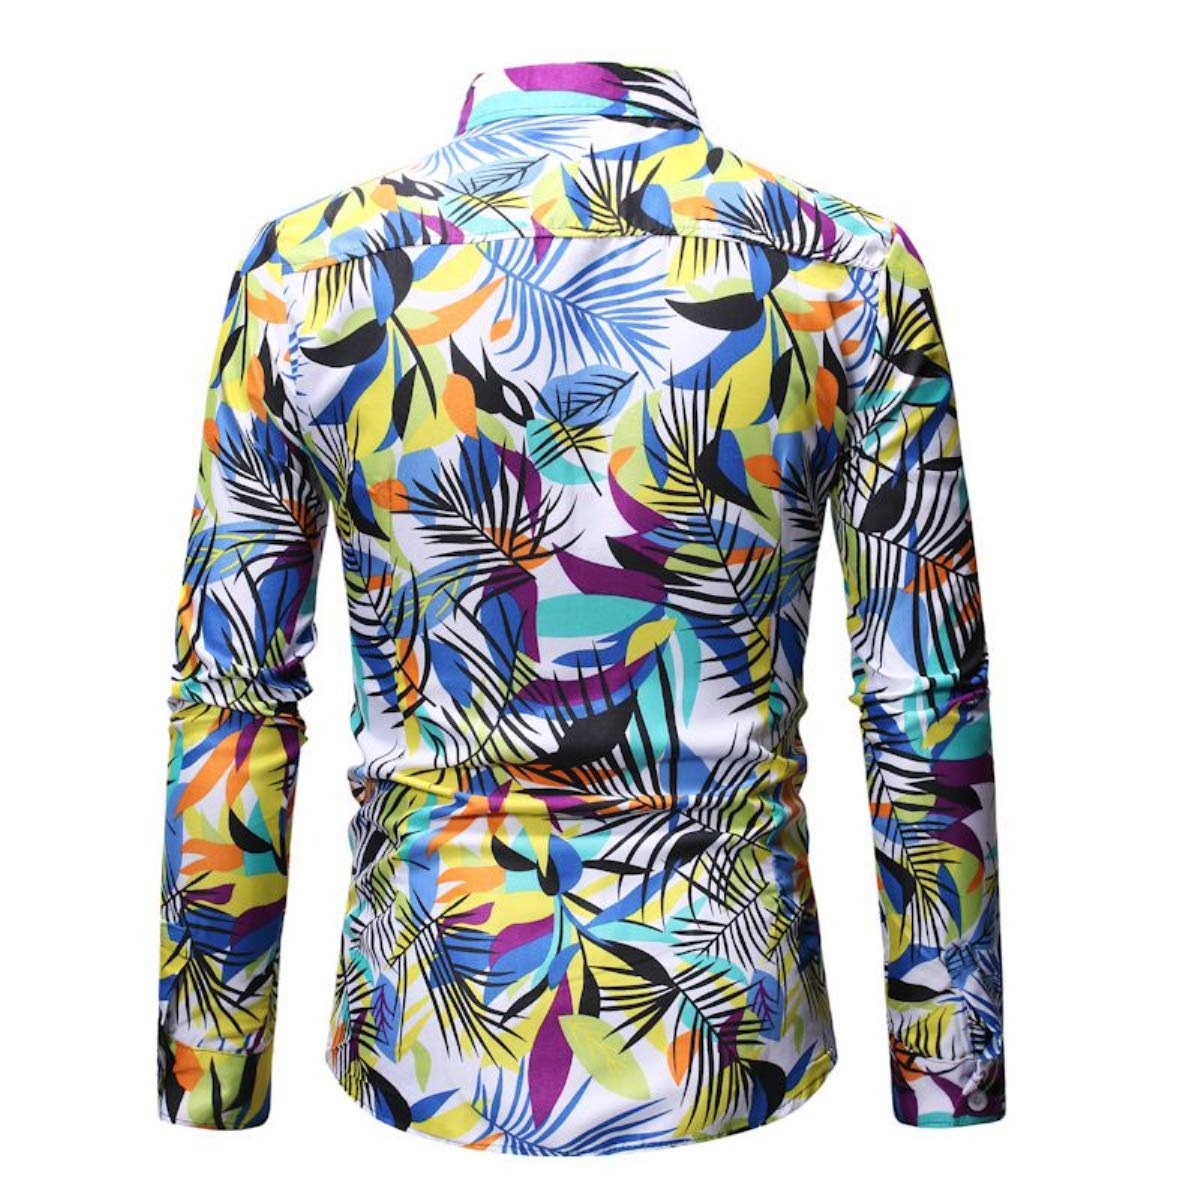 Men's Fashion Hip Hop Dress Shirt Long Sleeve Lapel Floral Print Slim Fit Casual Button Shirt Tops Fmeijia White by Fmeijia (Image #3)